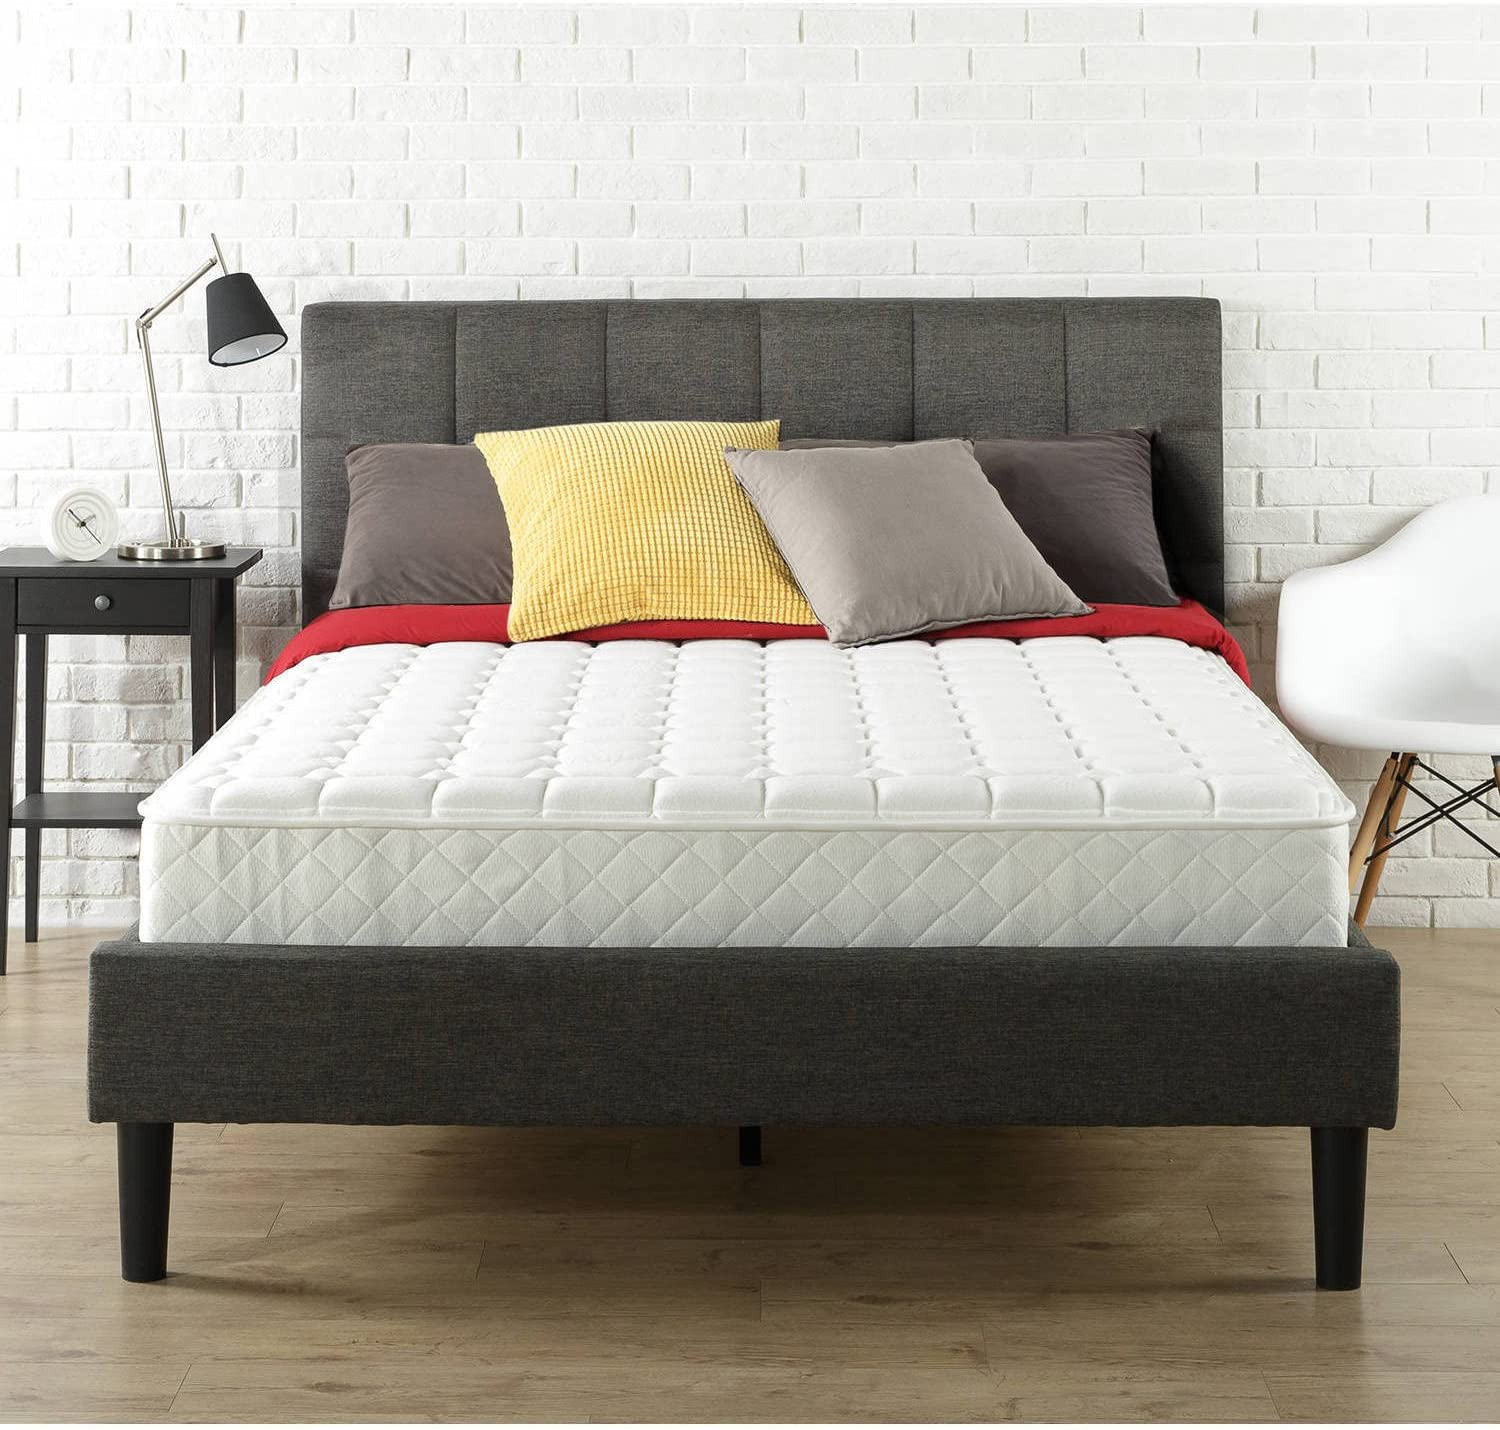 Slumber 1-8 Mattress-in-a-Box, Multiple Sizes Twin